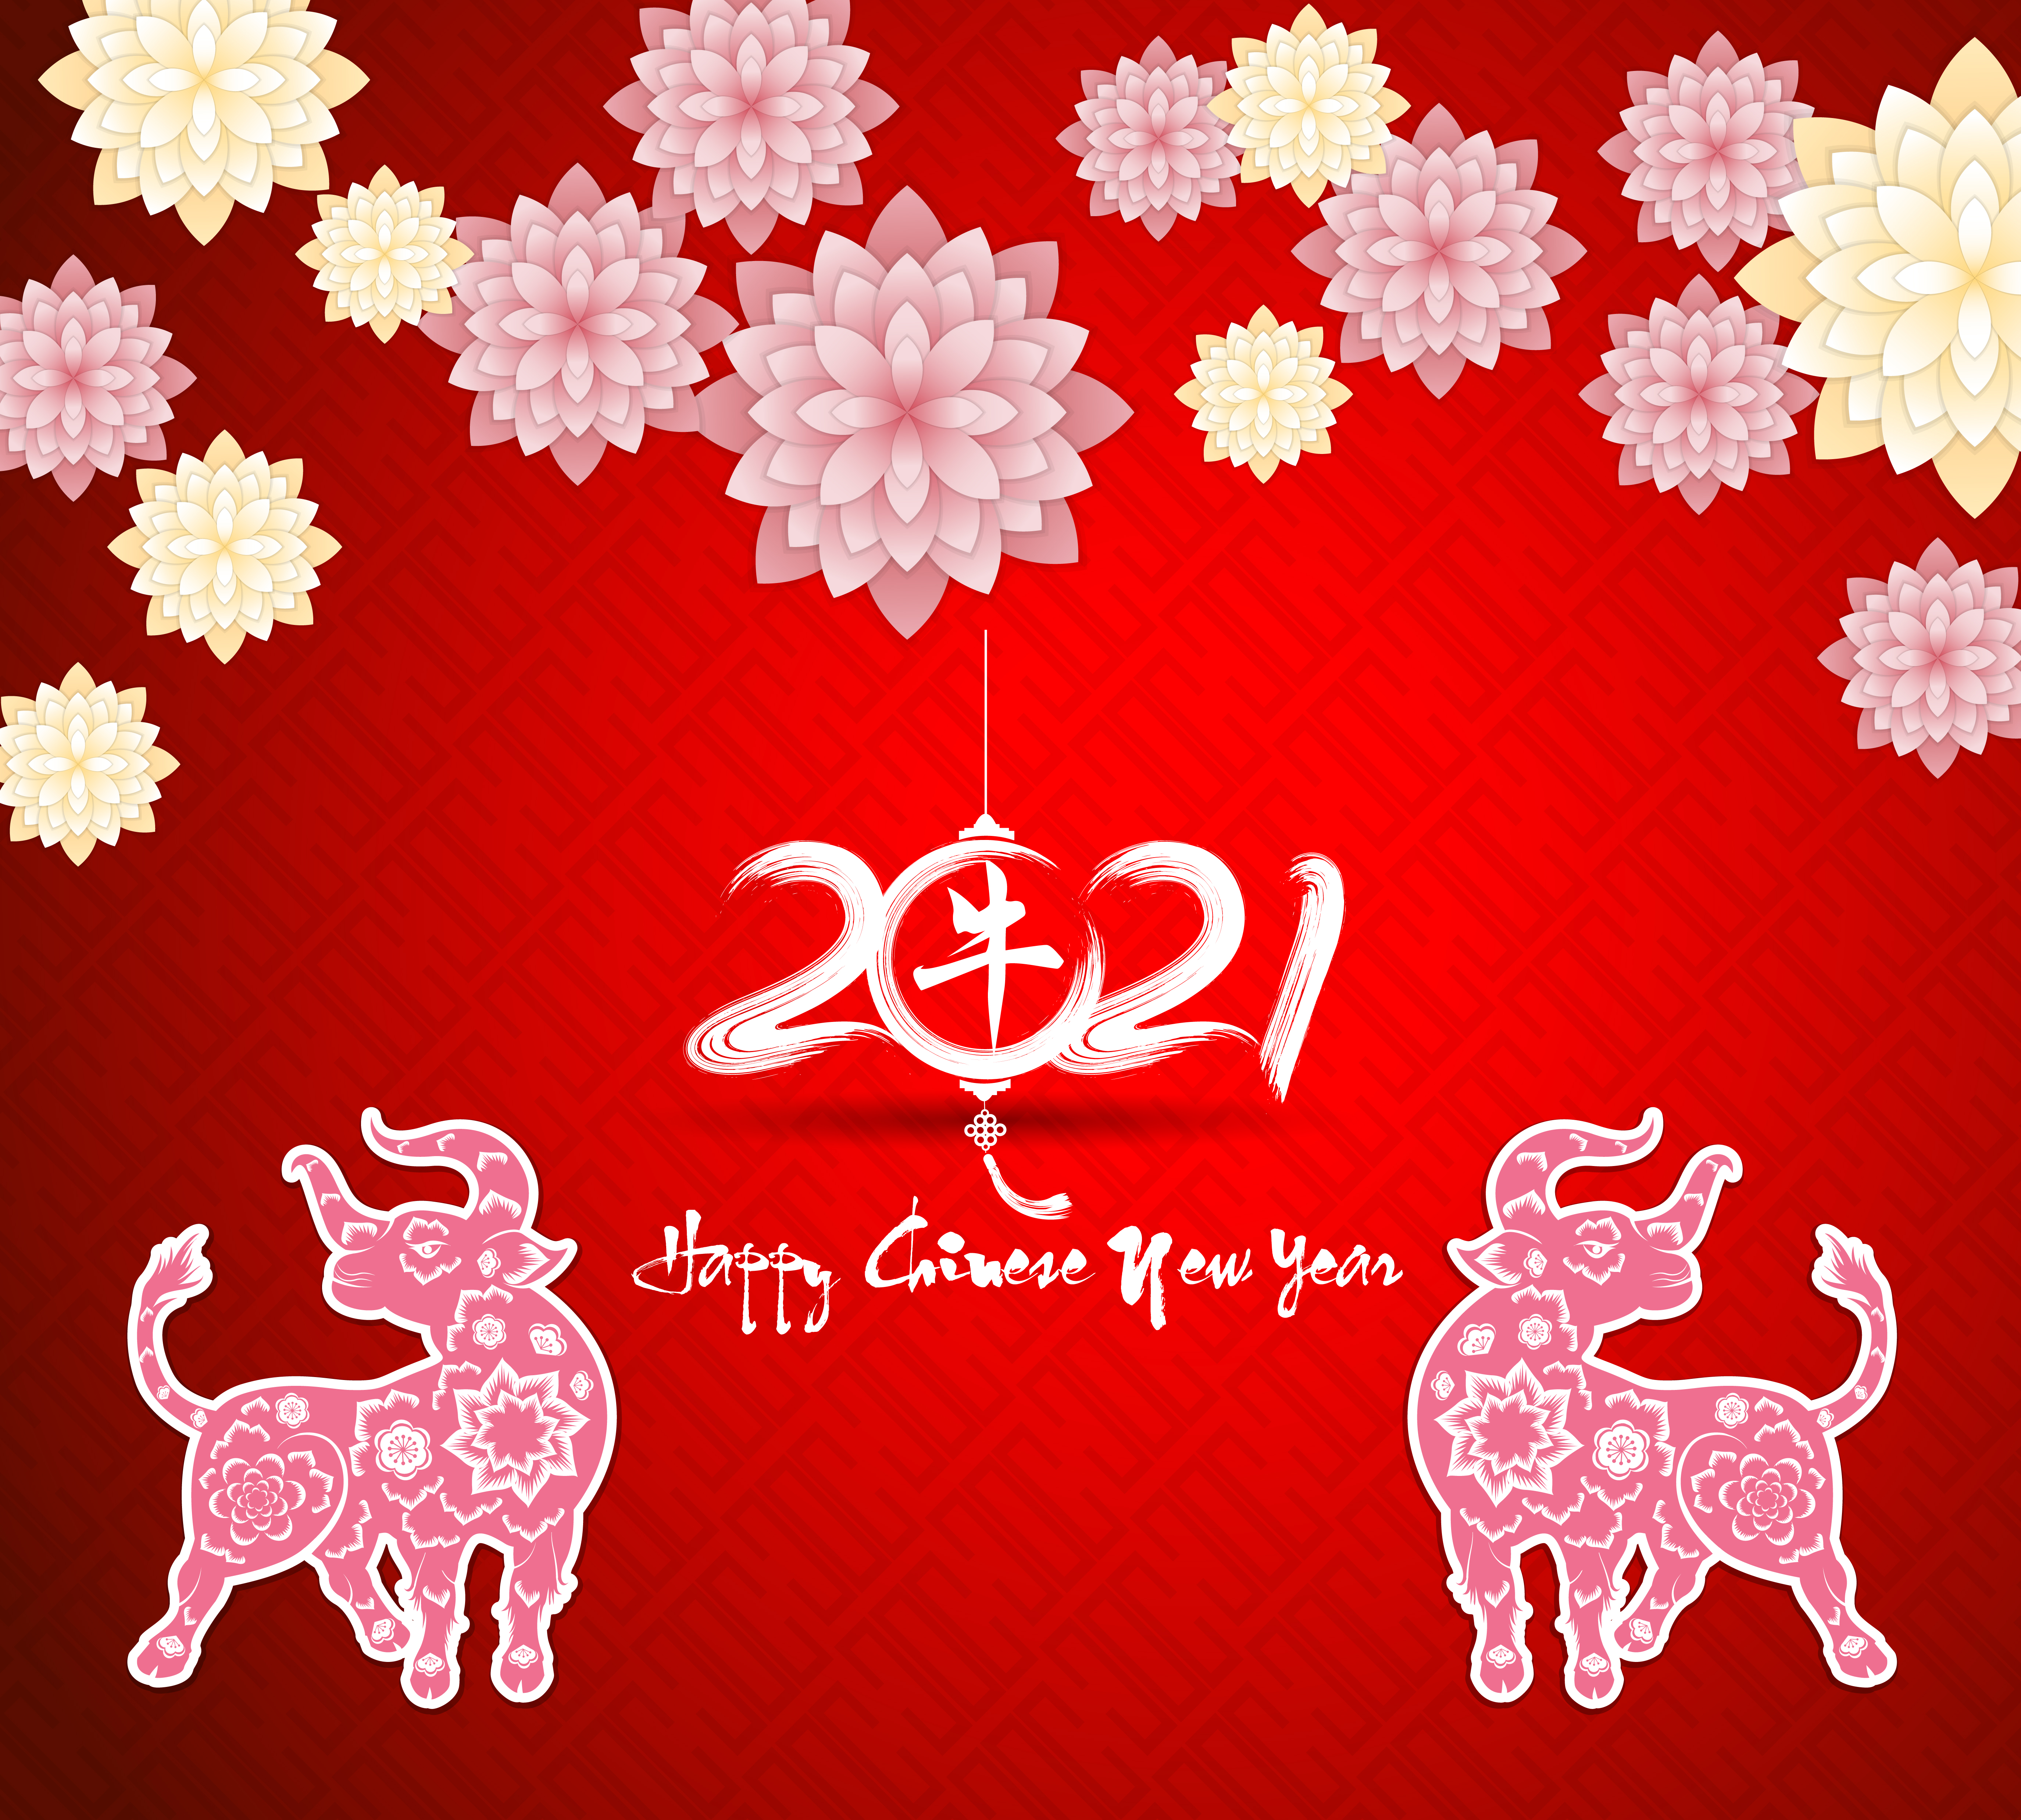 Chinese new year 2021 greeting on red - Download Free ...